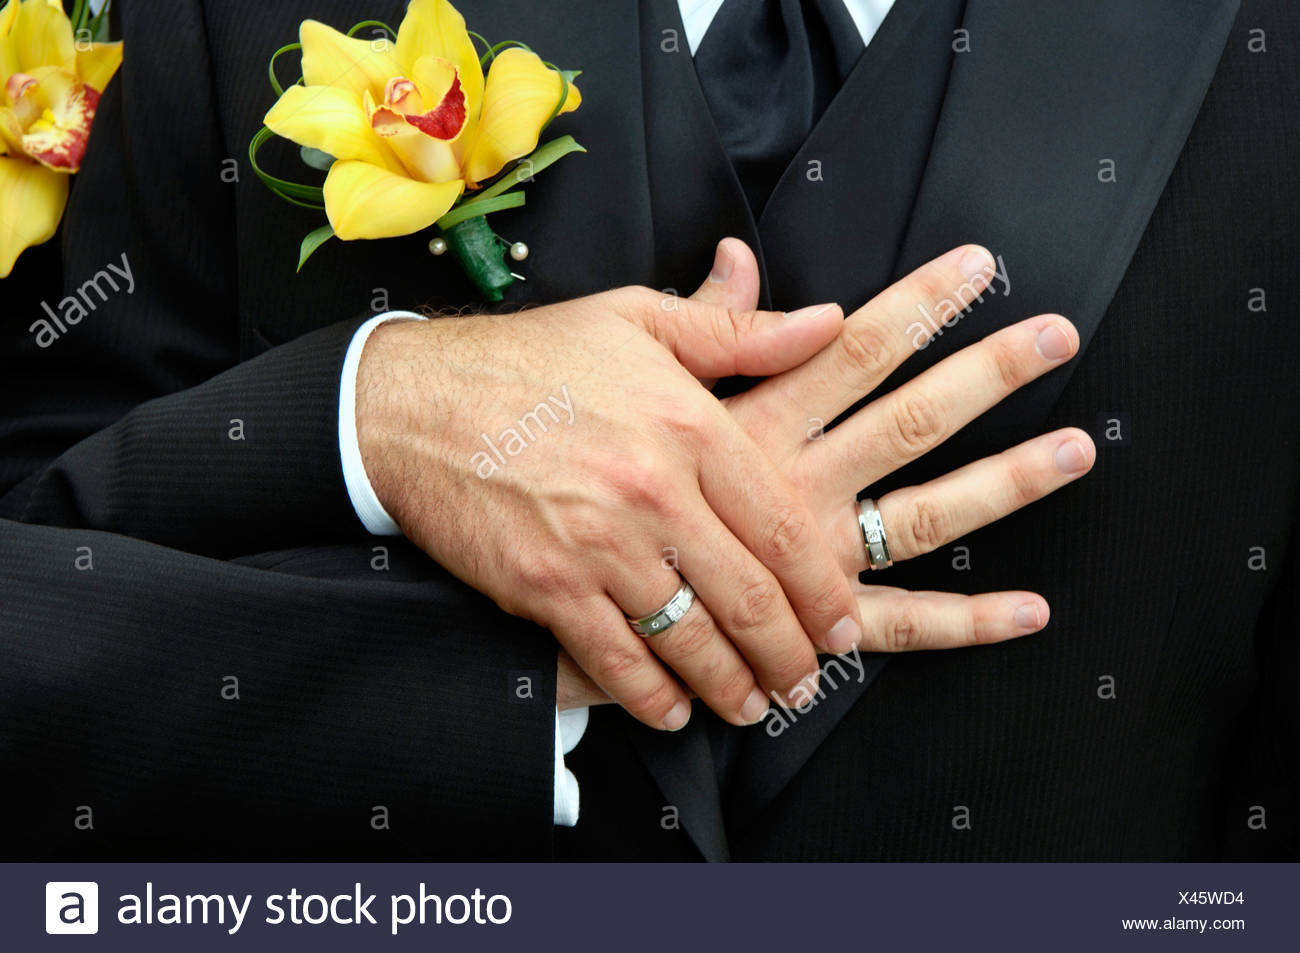 Gay Wedding Rings Stock Photos Gay Wedding Rings Stock Images Alamy